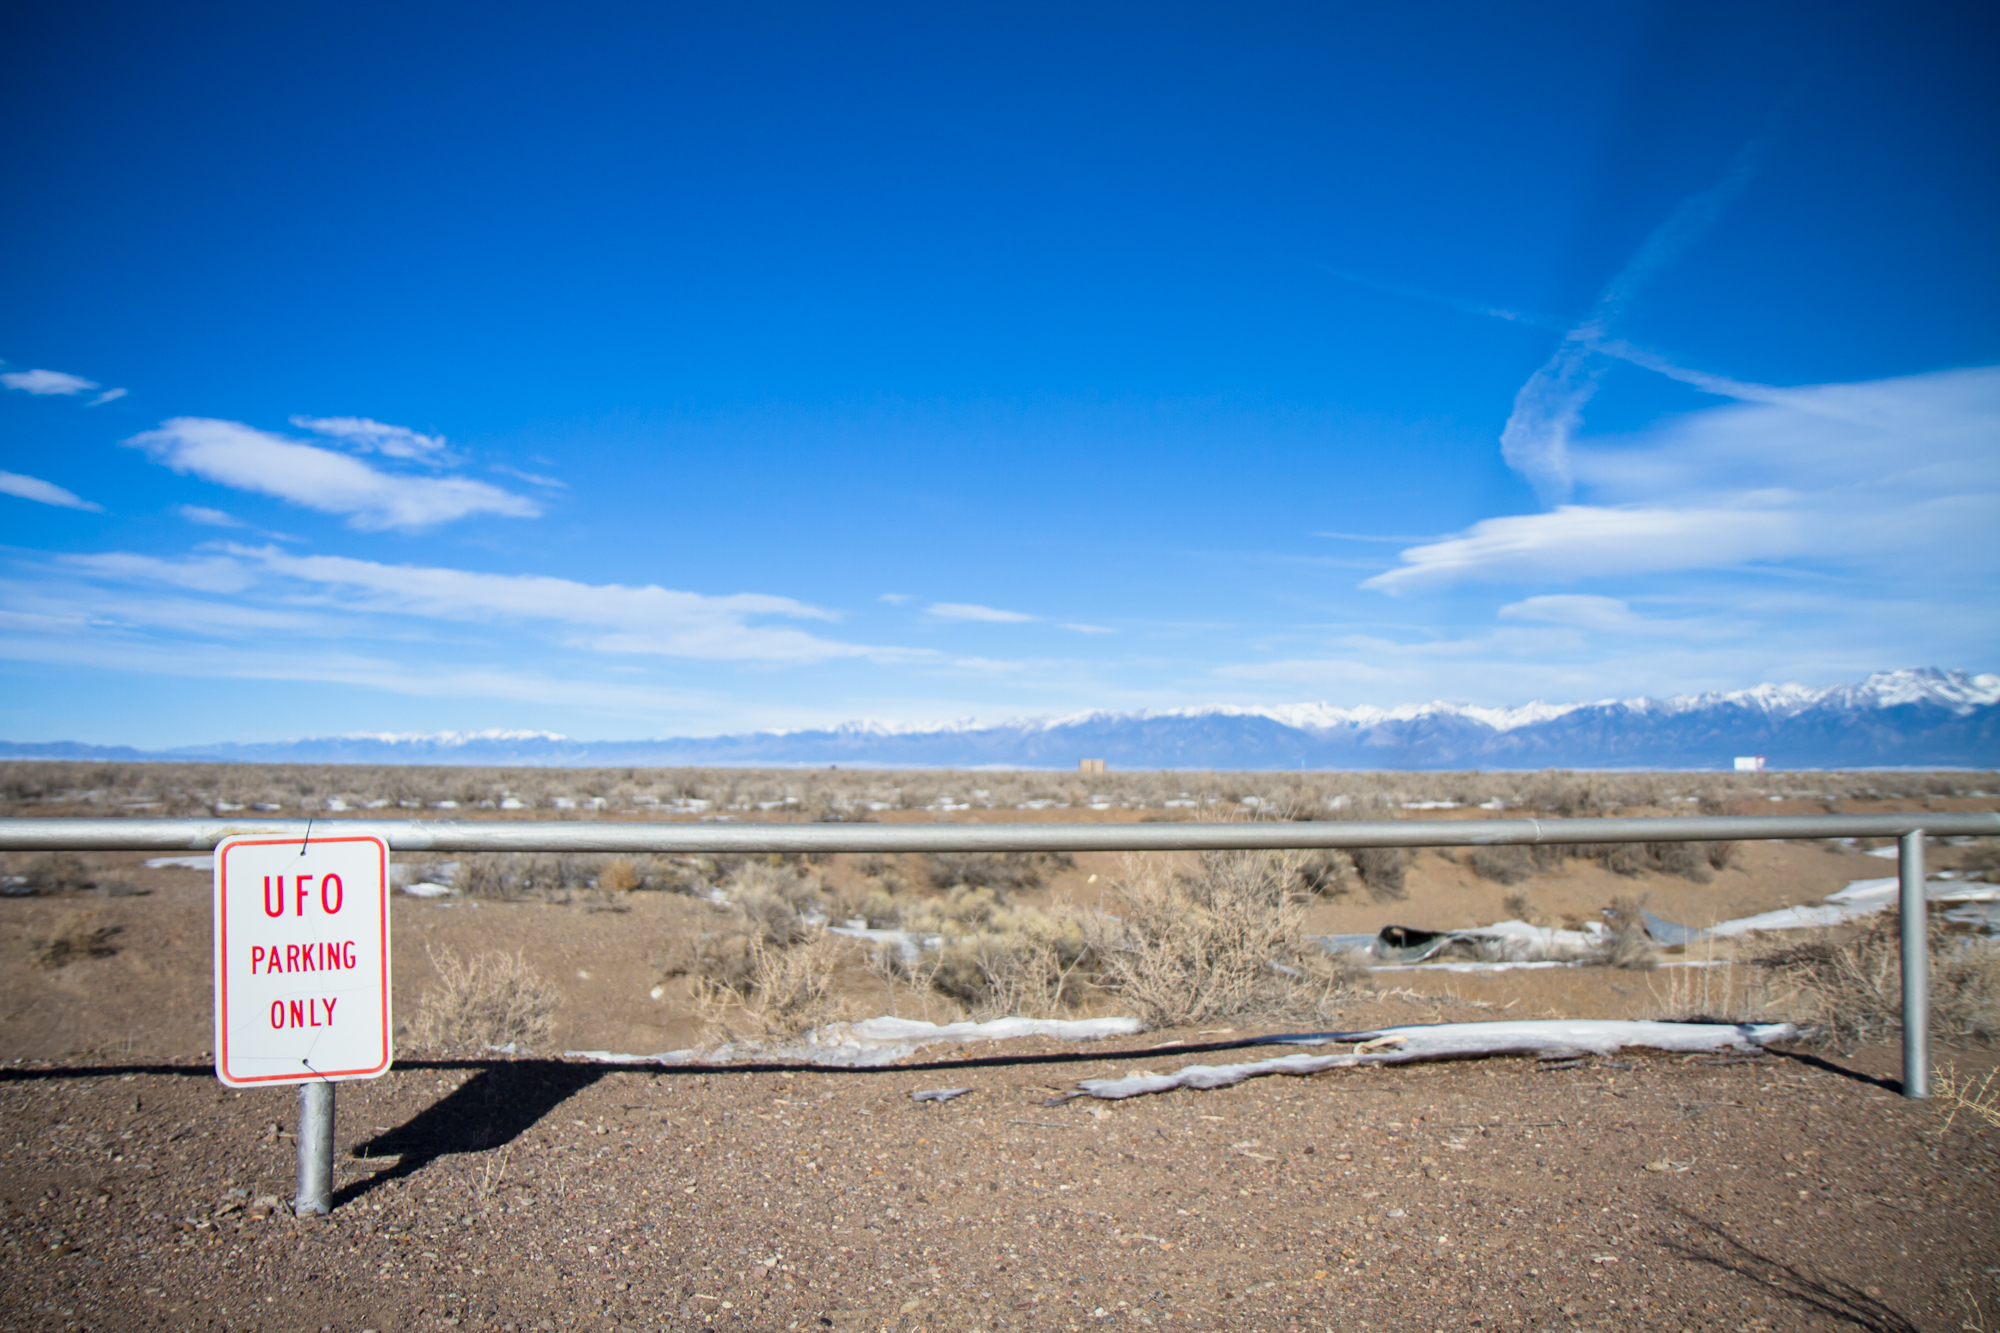 """Metal Sign - """"UFO Parking Only"""" (Colorado) - Photo by Peter Kleeman 2012"""